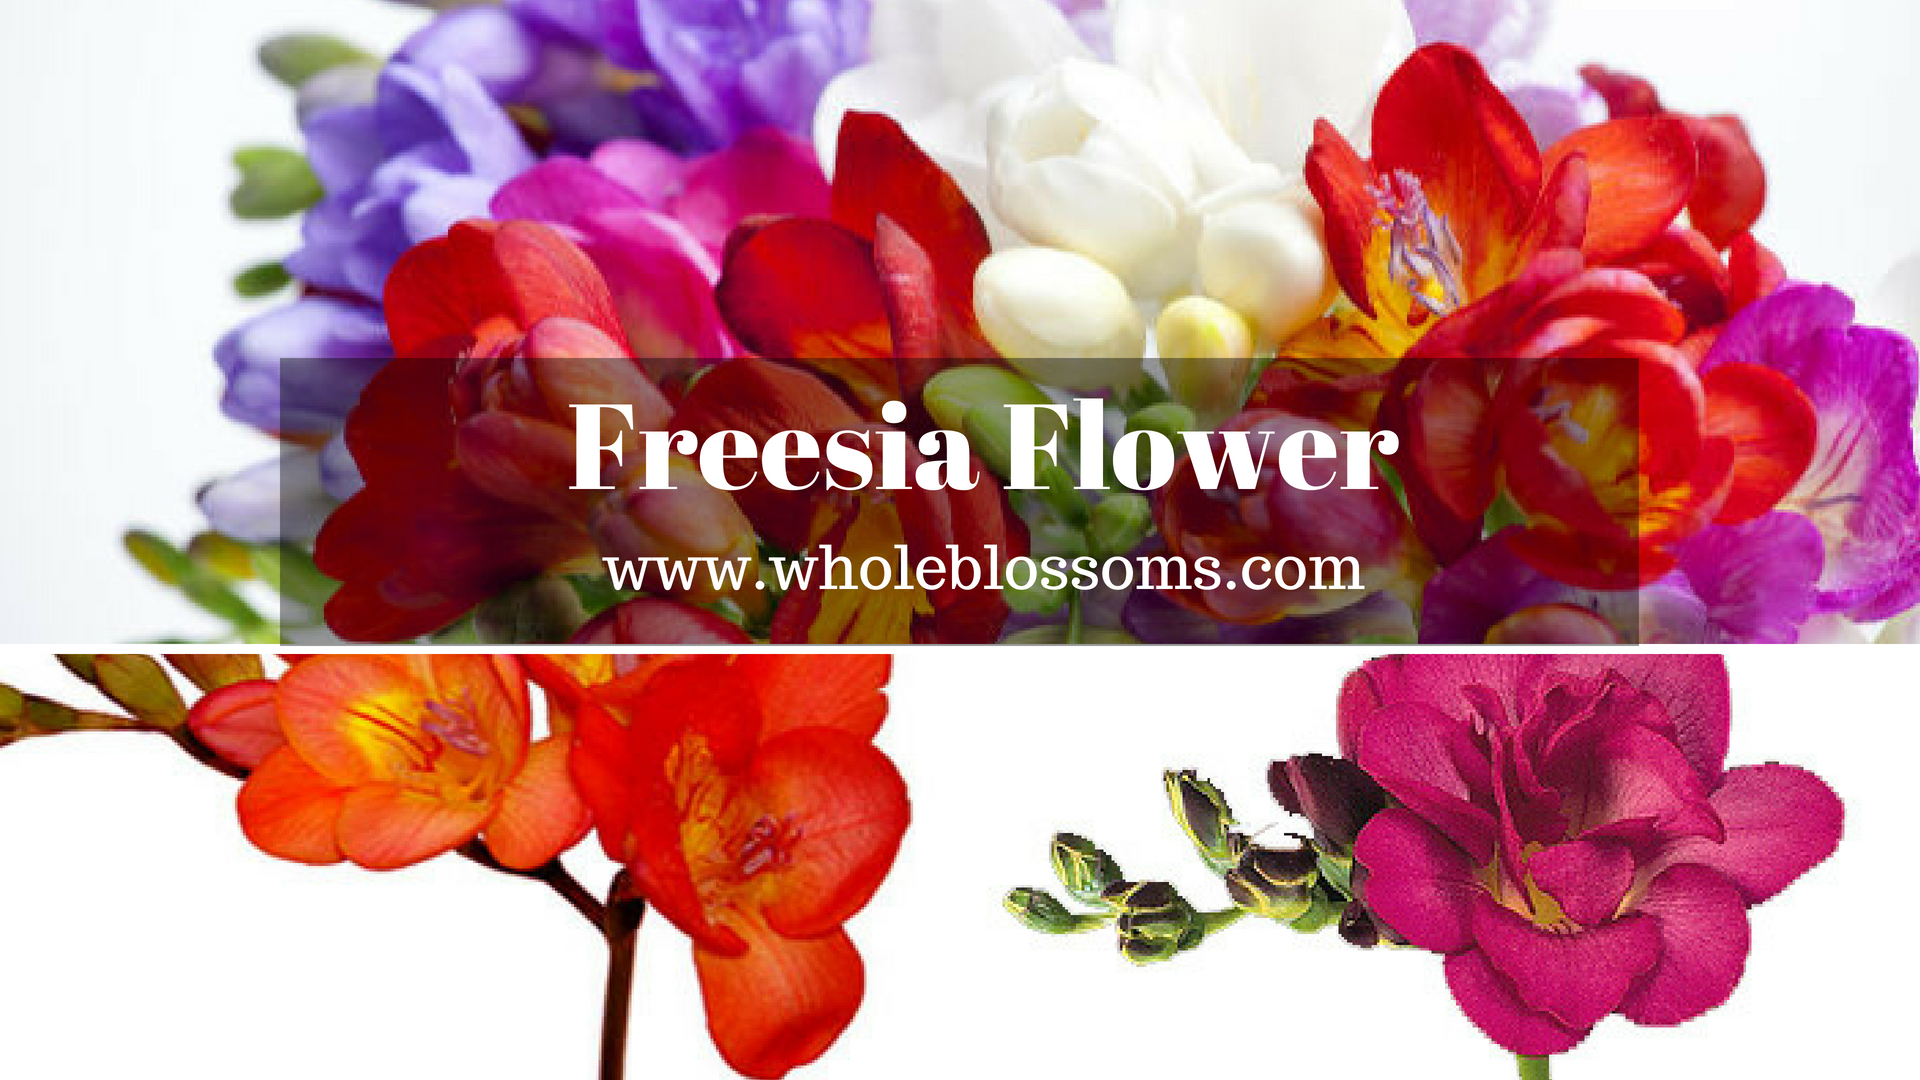 Buy Perfect Freesia Flower for Your Decoration